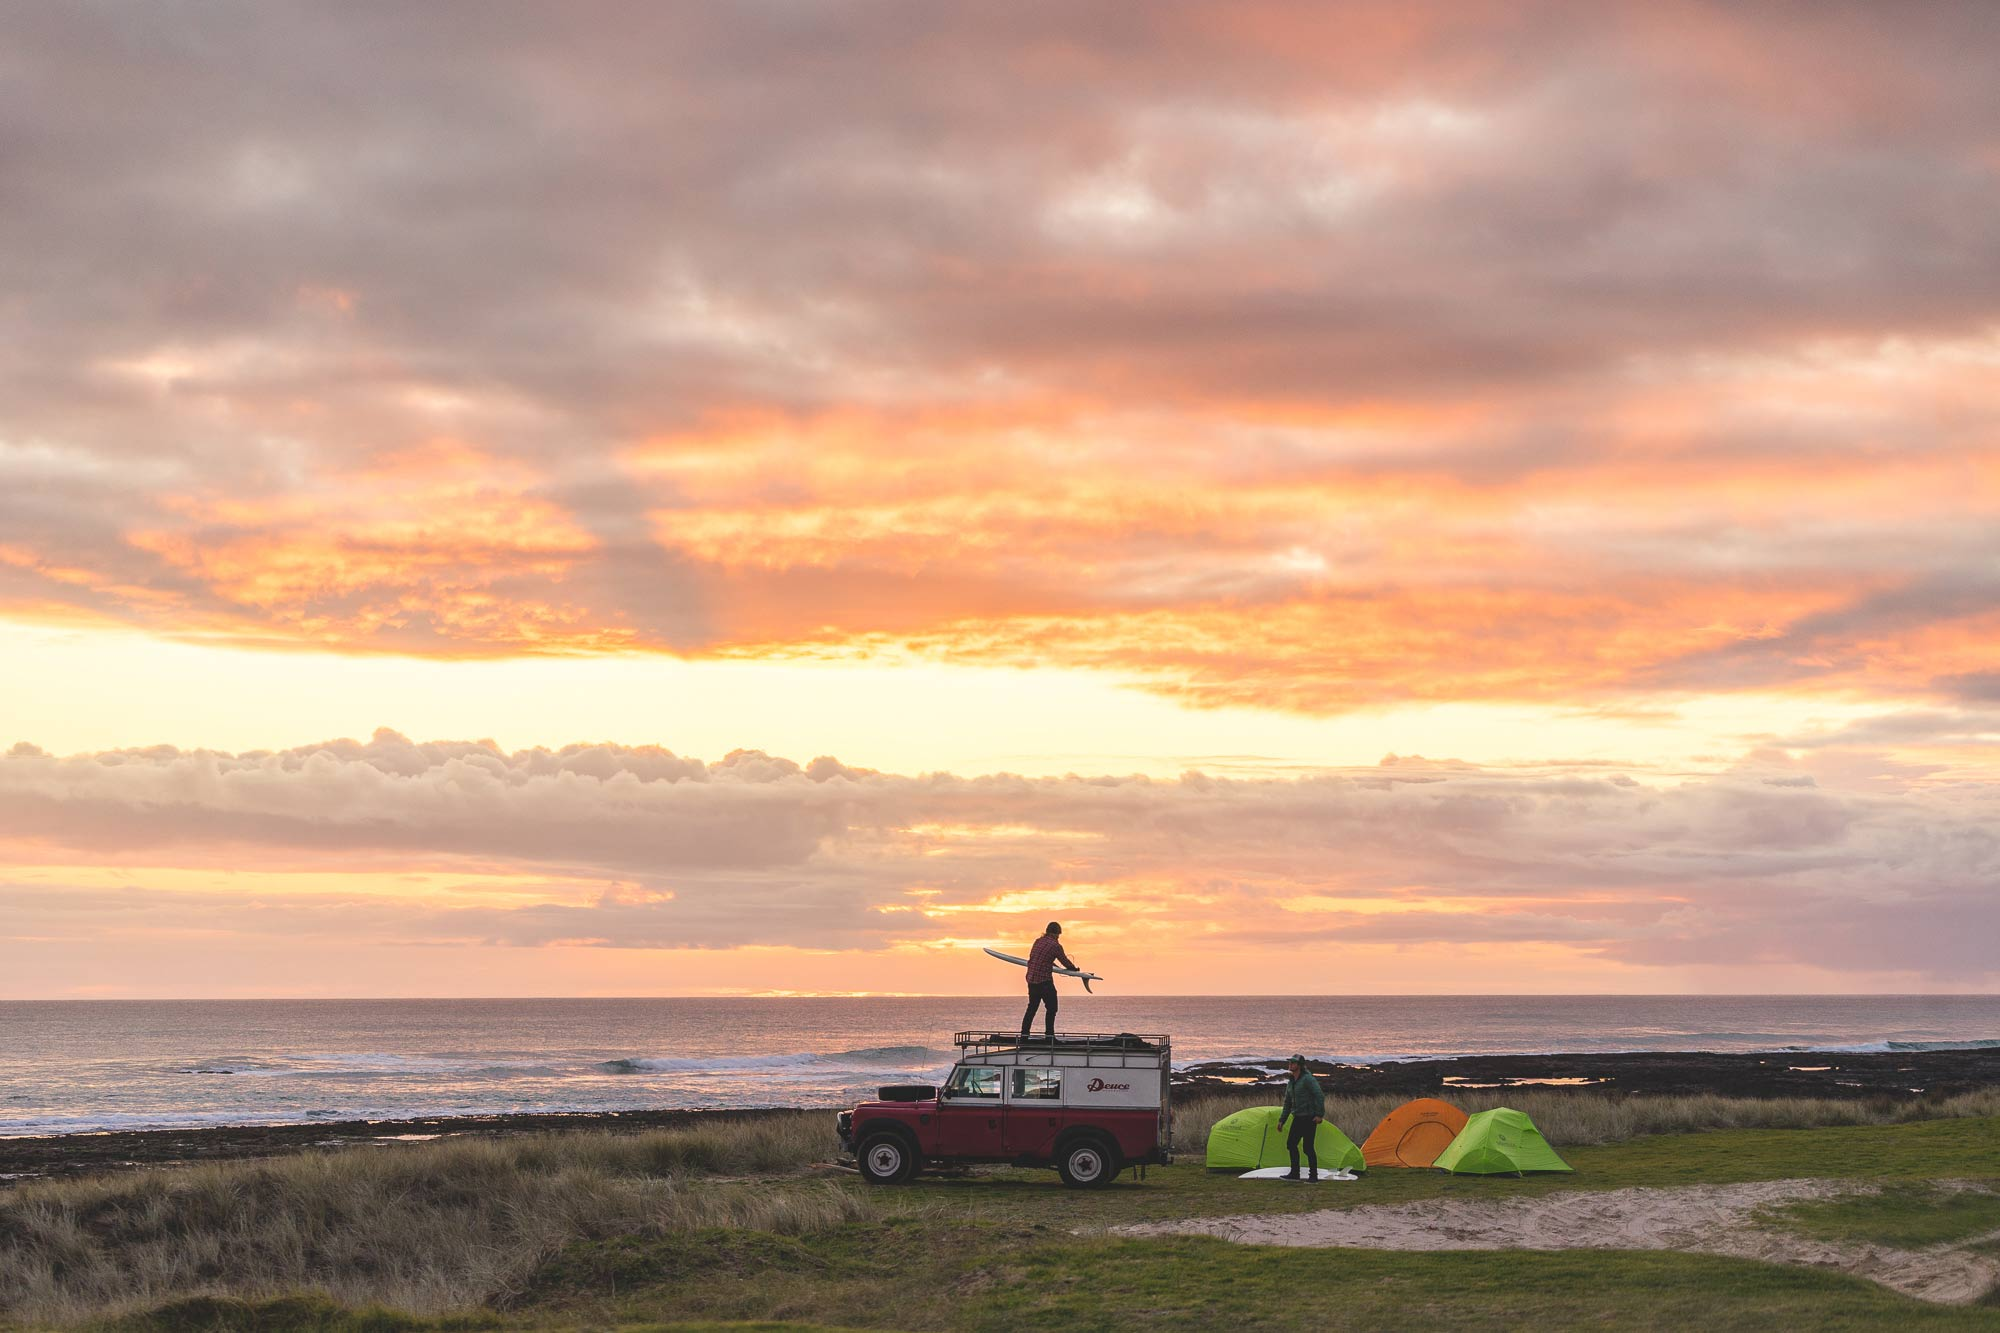 Unloading the Deuce Land Rover and setting up camp on the beach in New Zealand